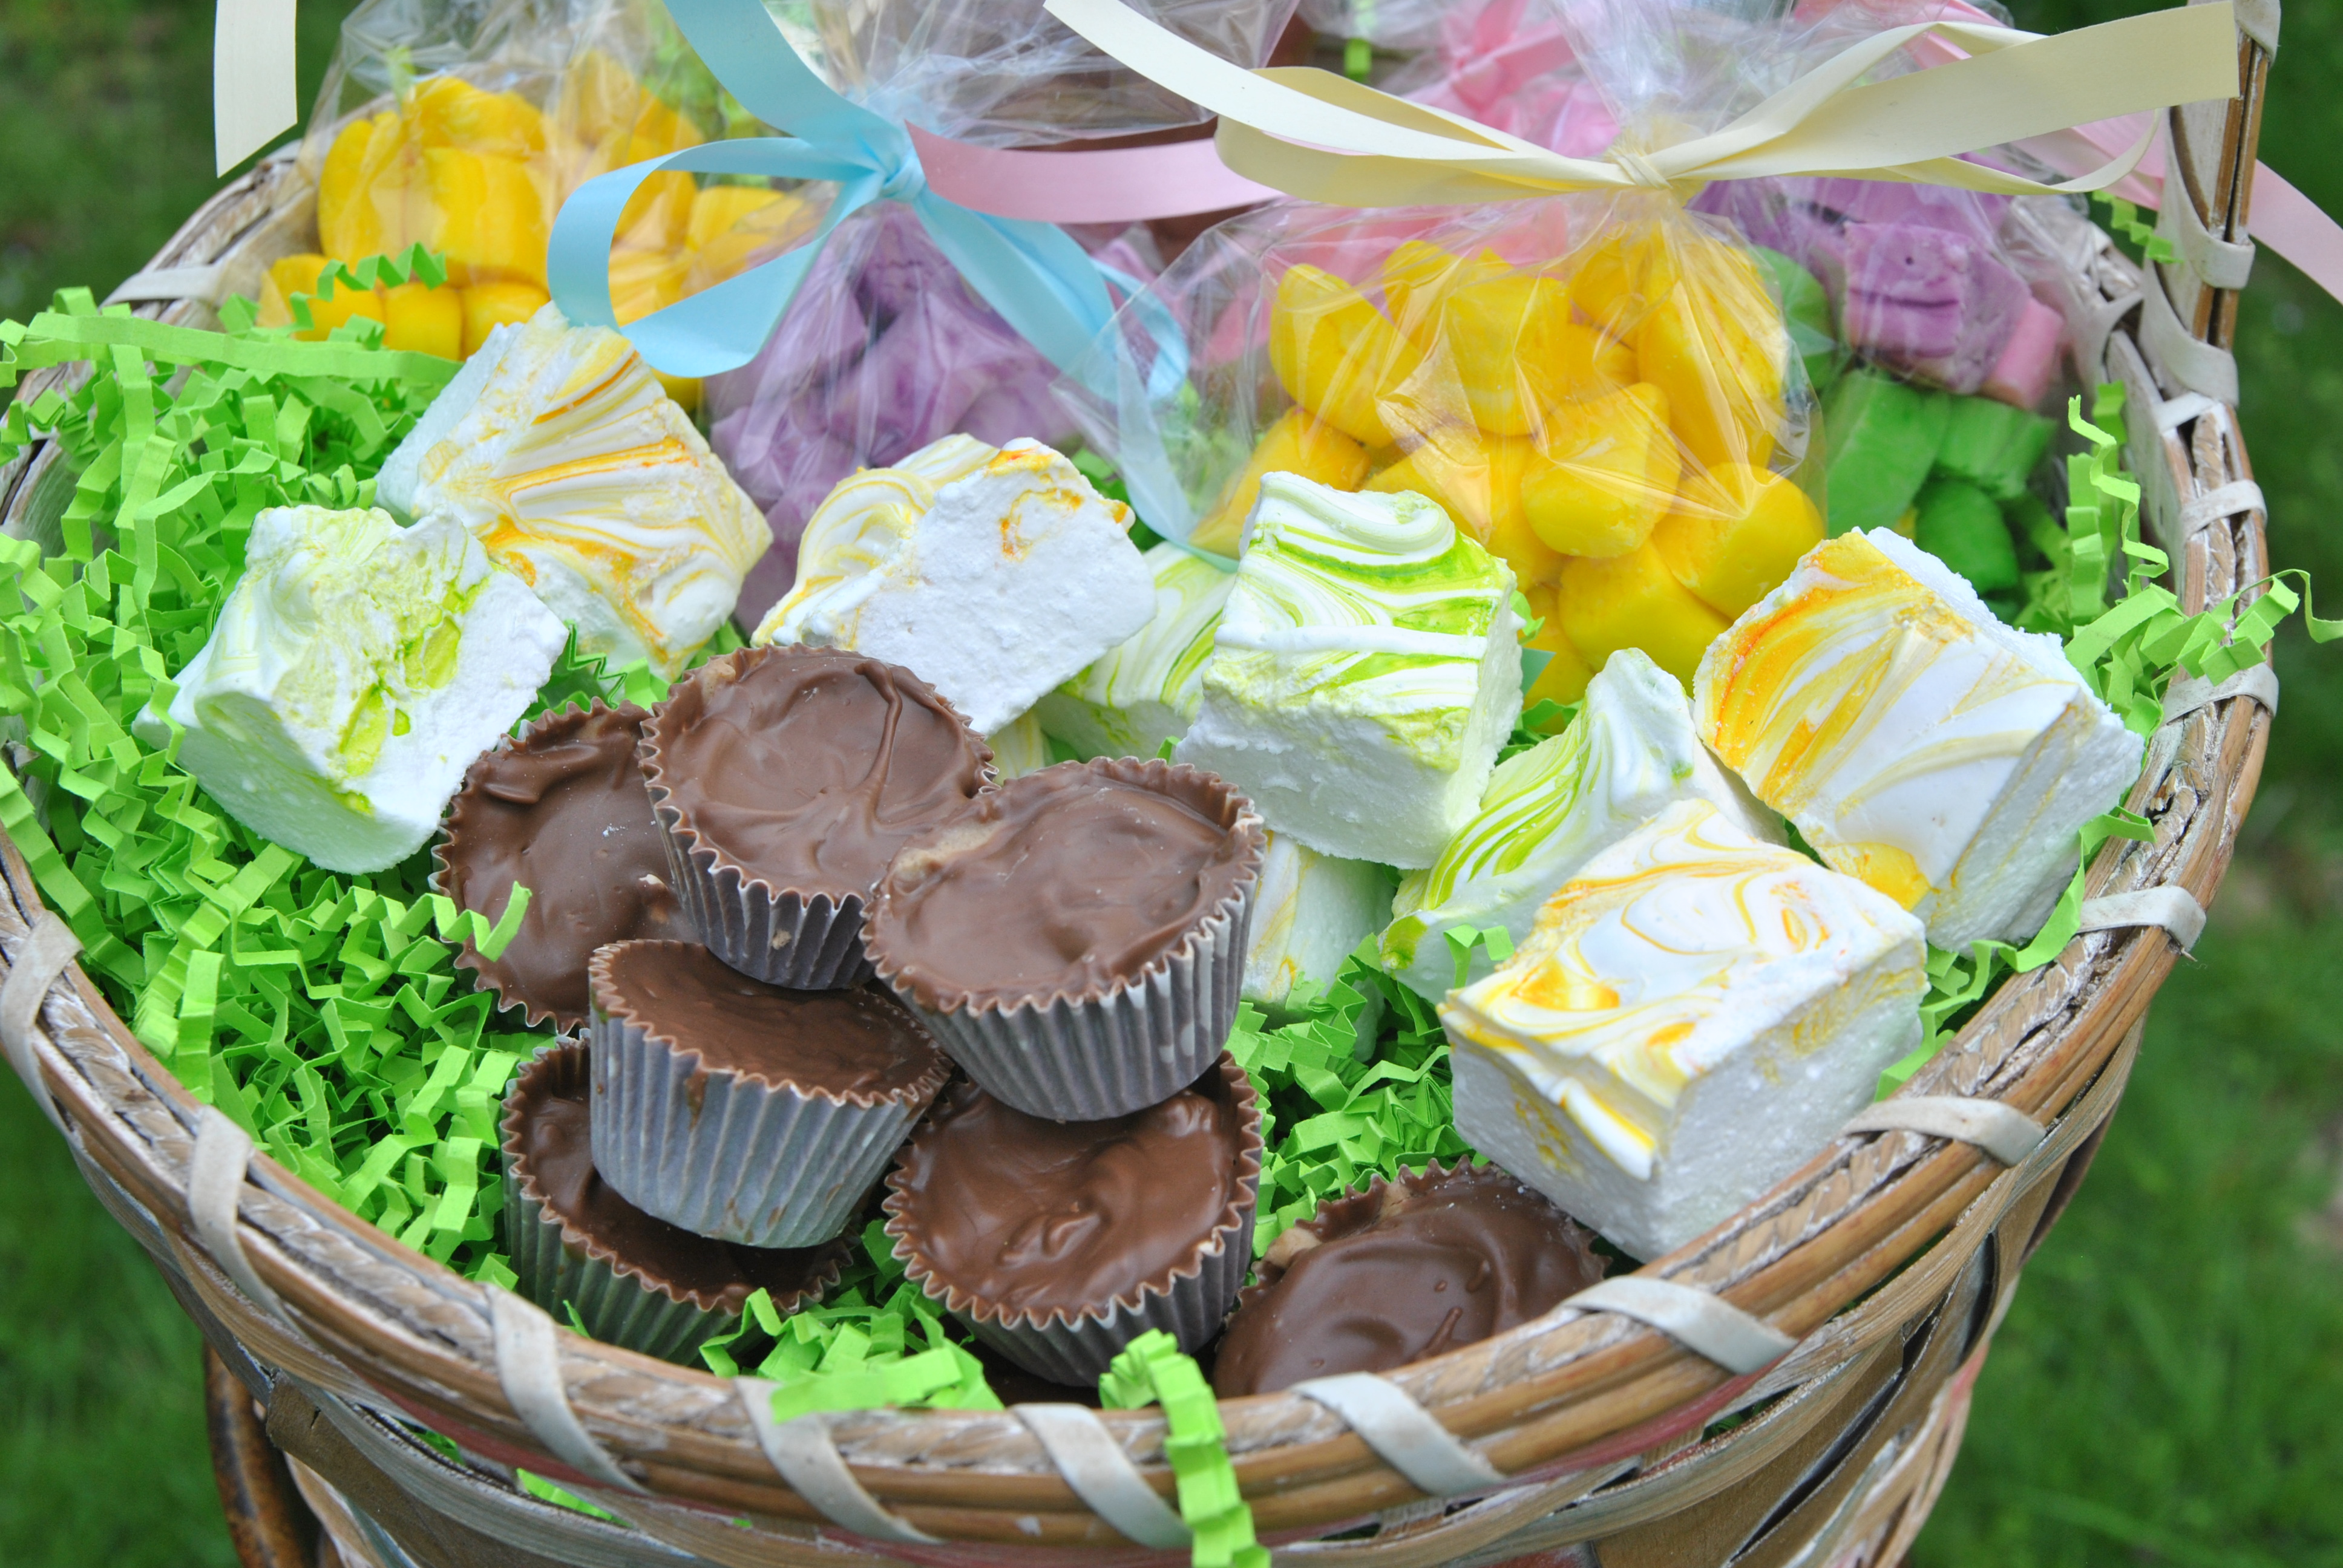 Hop to it and make your own Easter basket treats